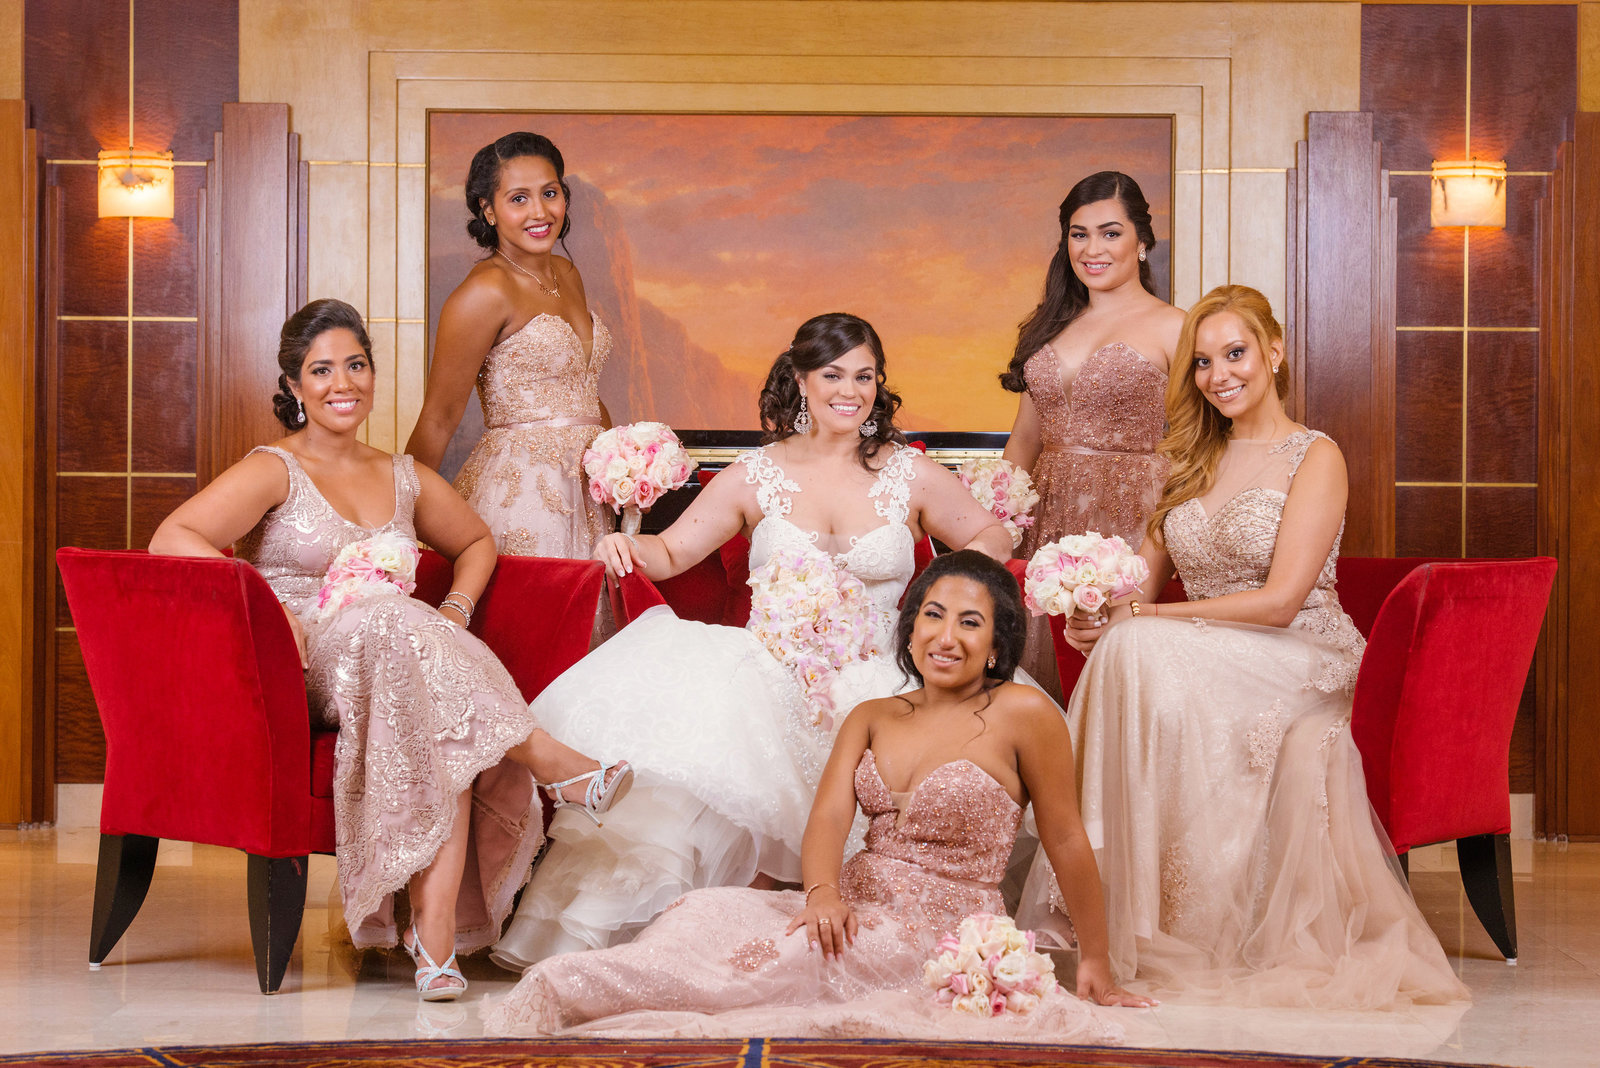 Bridesmaids at the photo session room at Chateau Briand